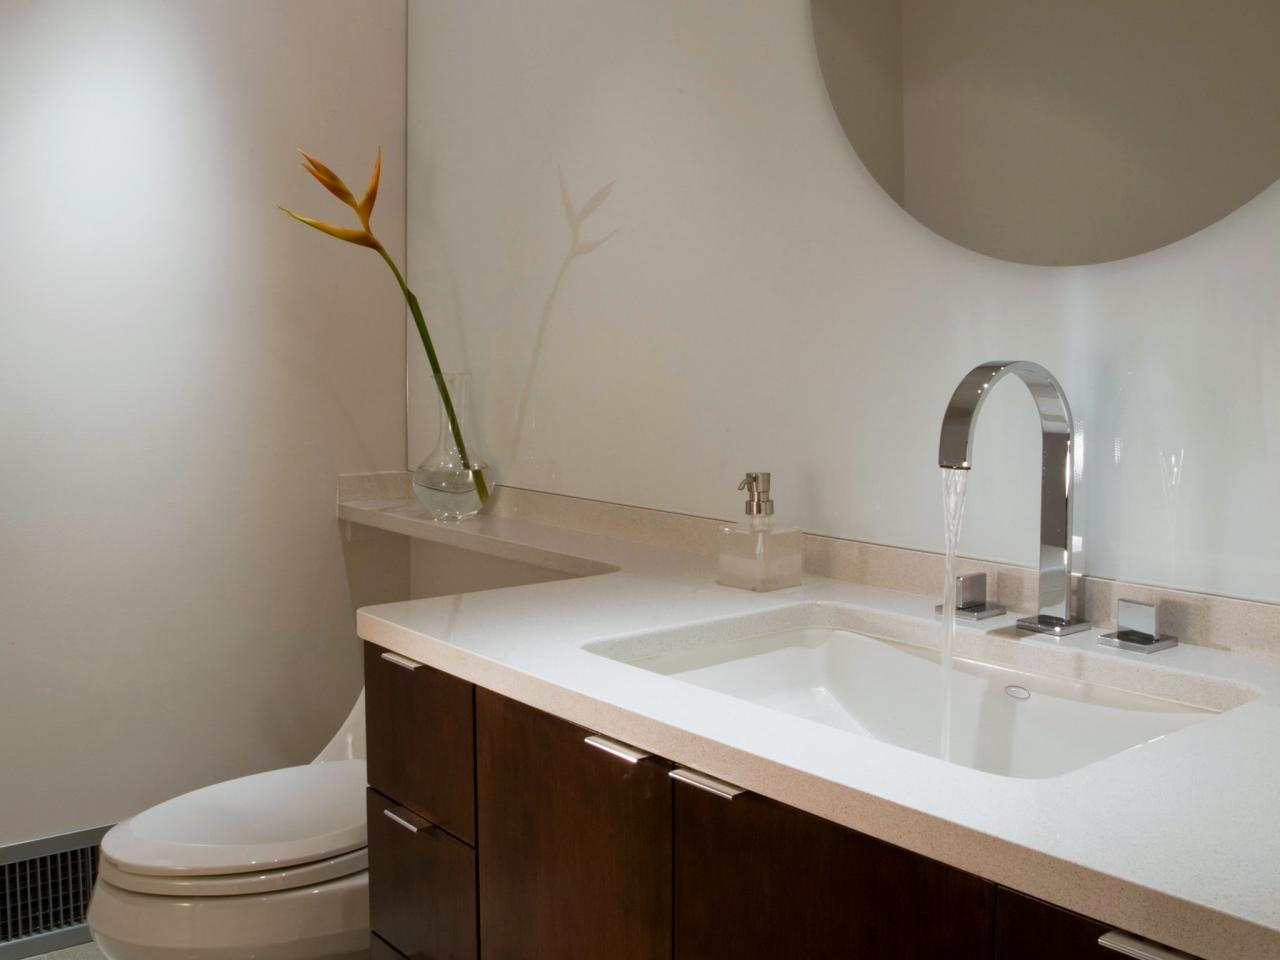 Bathroom Countertop Surface Options : bathroom with round mirror sleek chrome accents make this bathroom ...